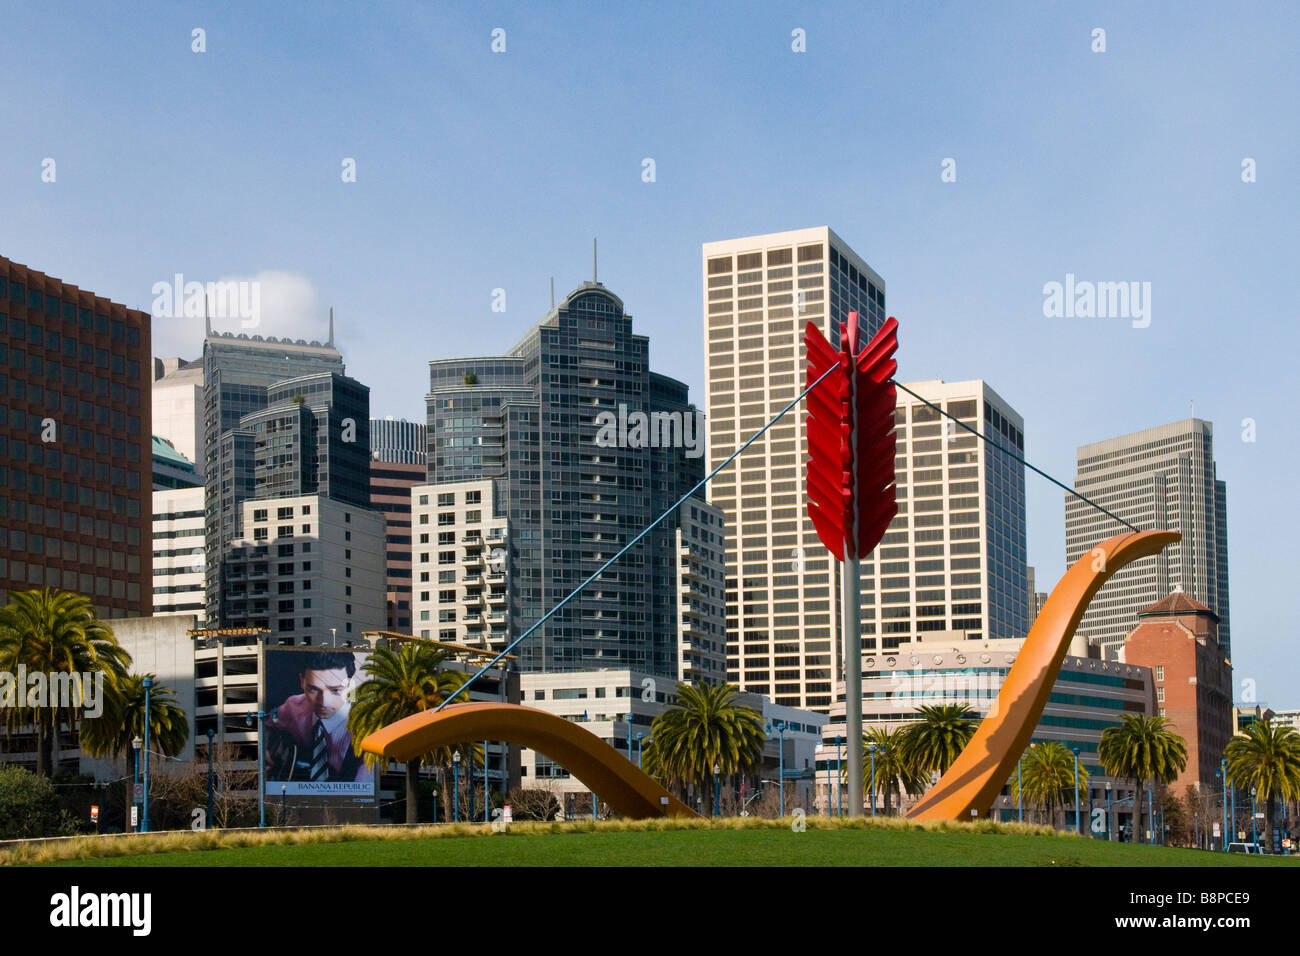 Large sculpture of bow and arrow in Rincon Park with San Francisco skyline in background - Stock Image